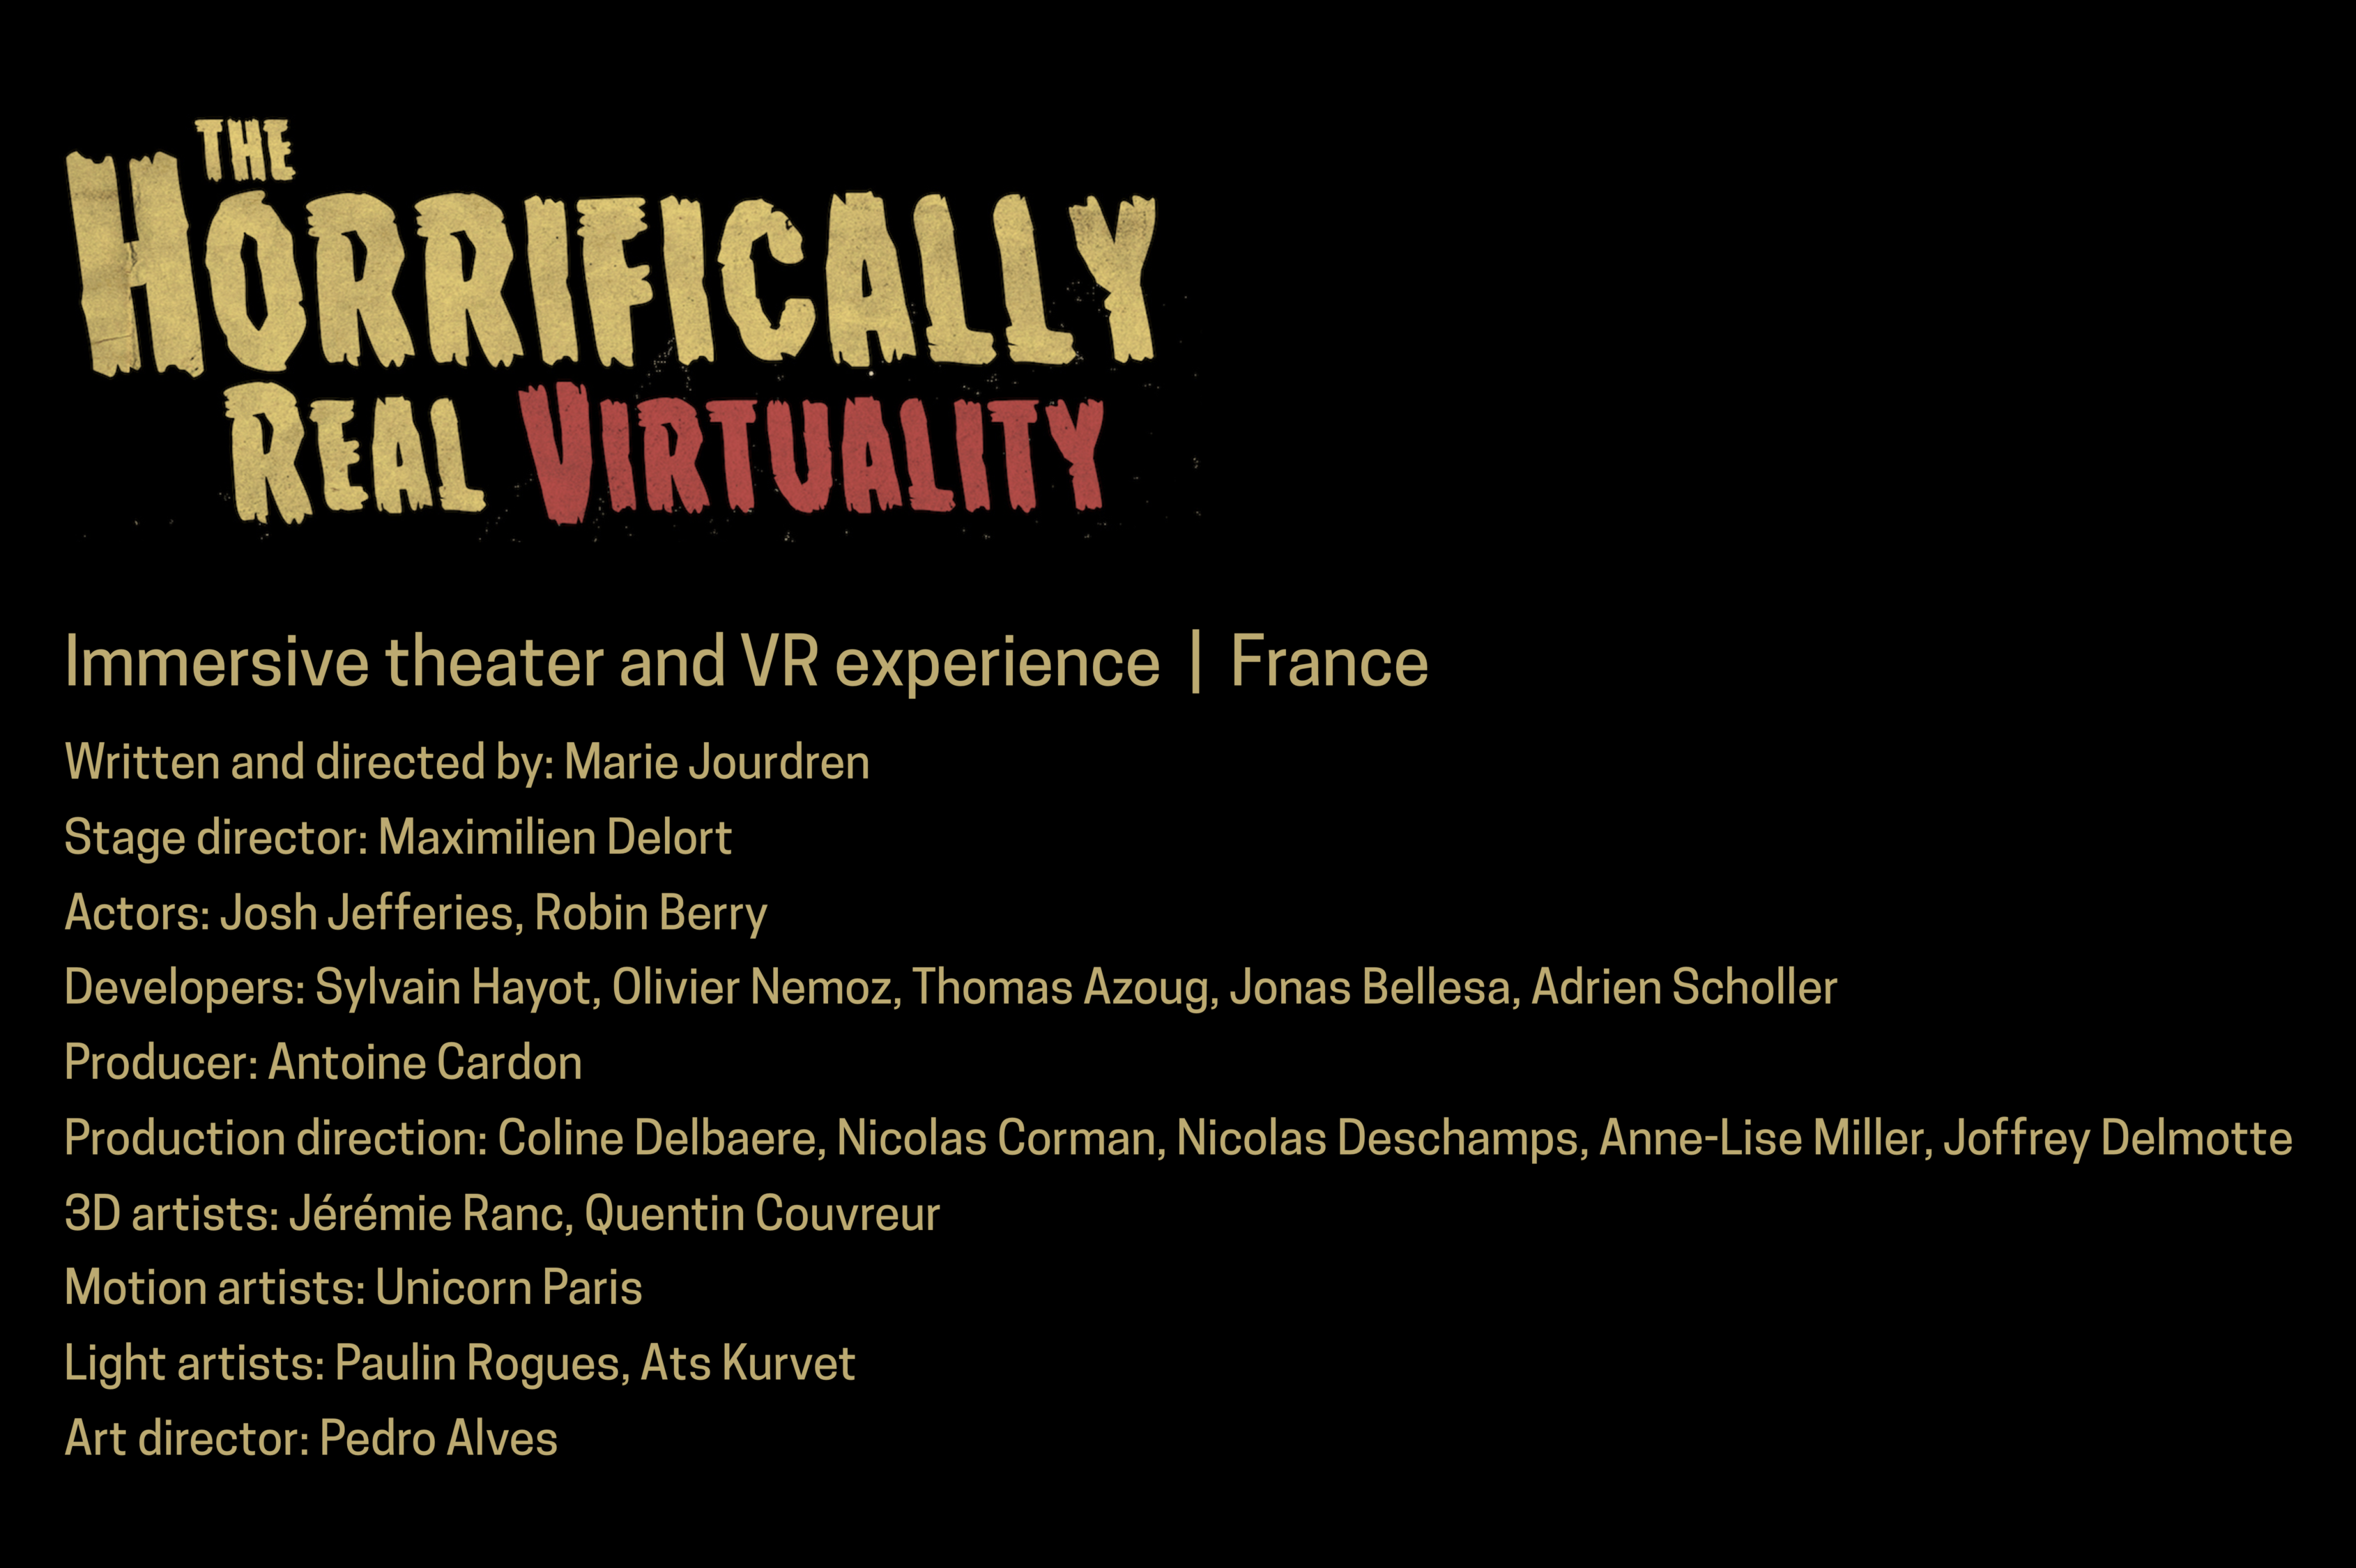 Horrifically Real Virtuality credits